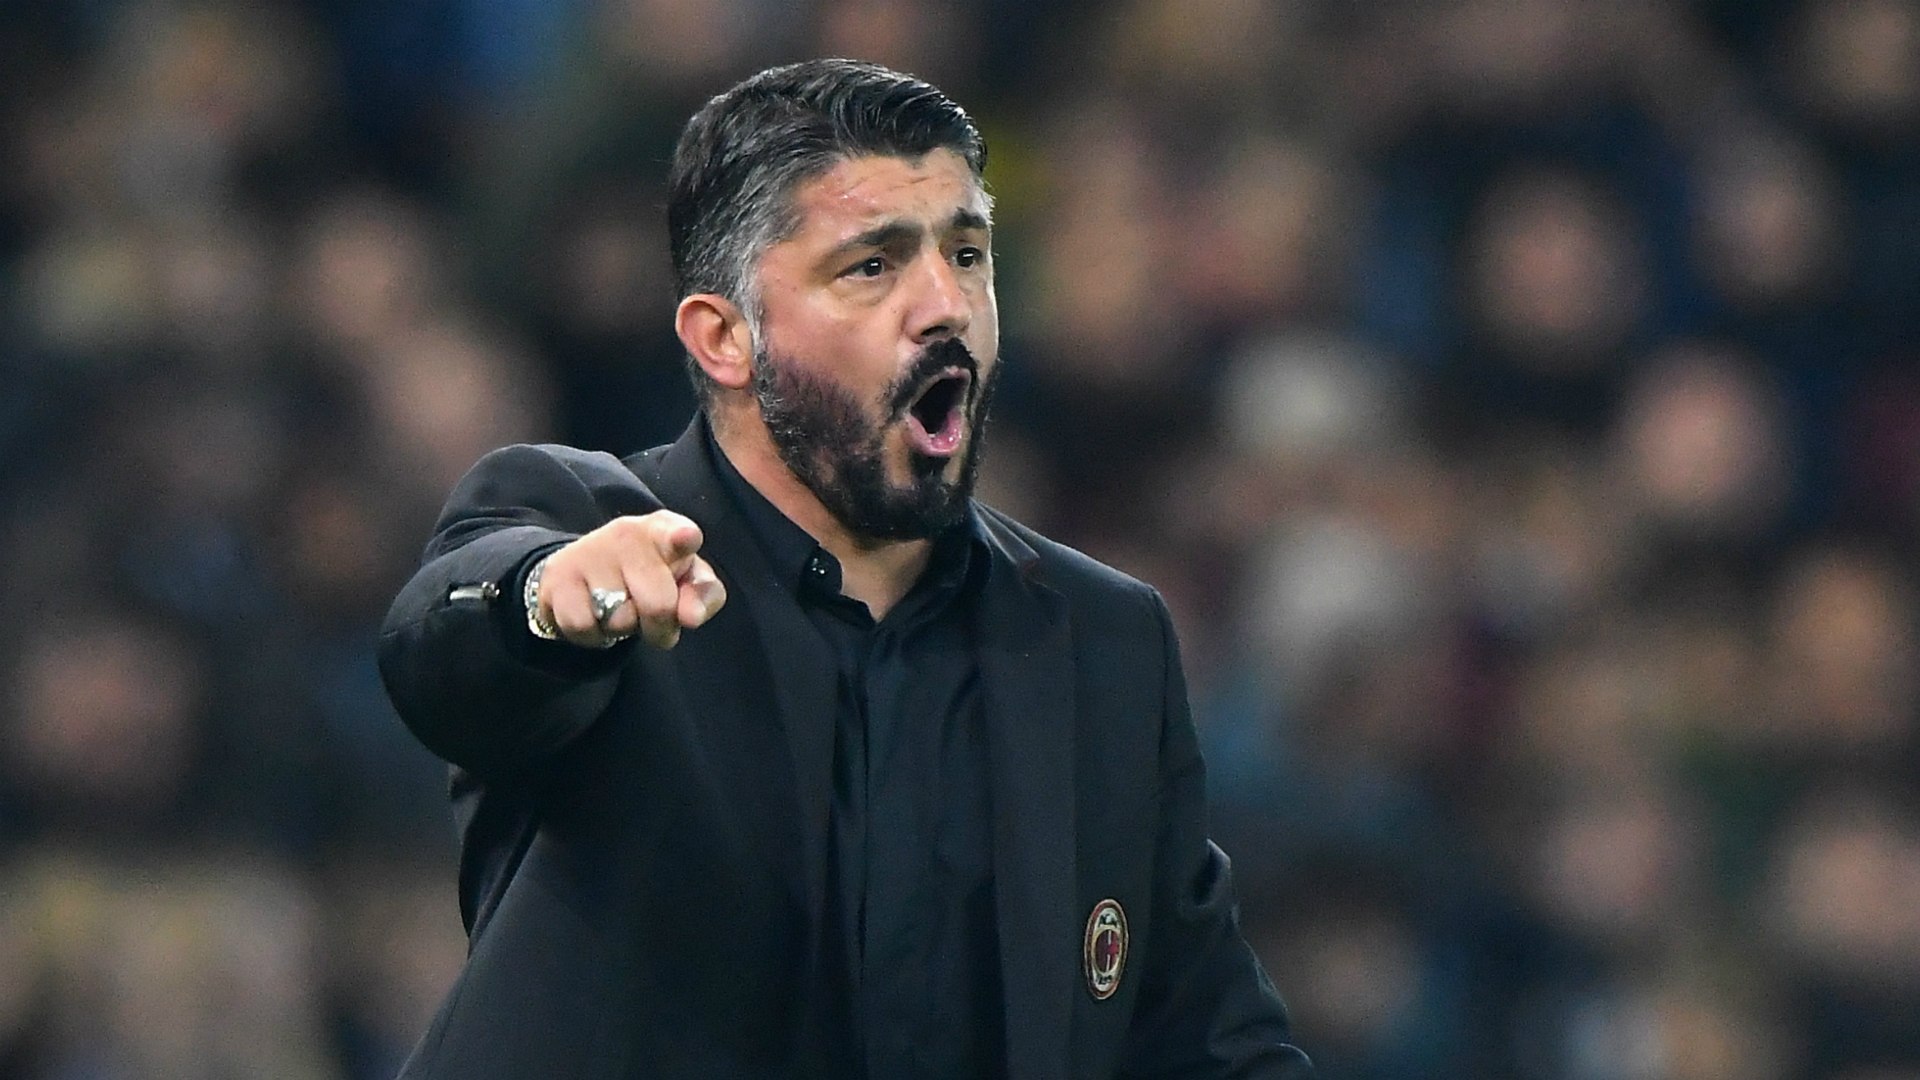 Gattuso still in the dark over AC Milan future